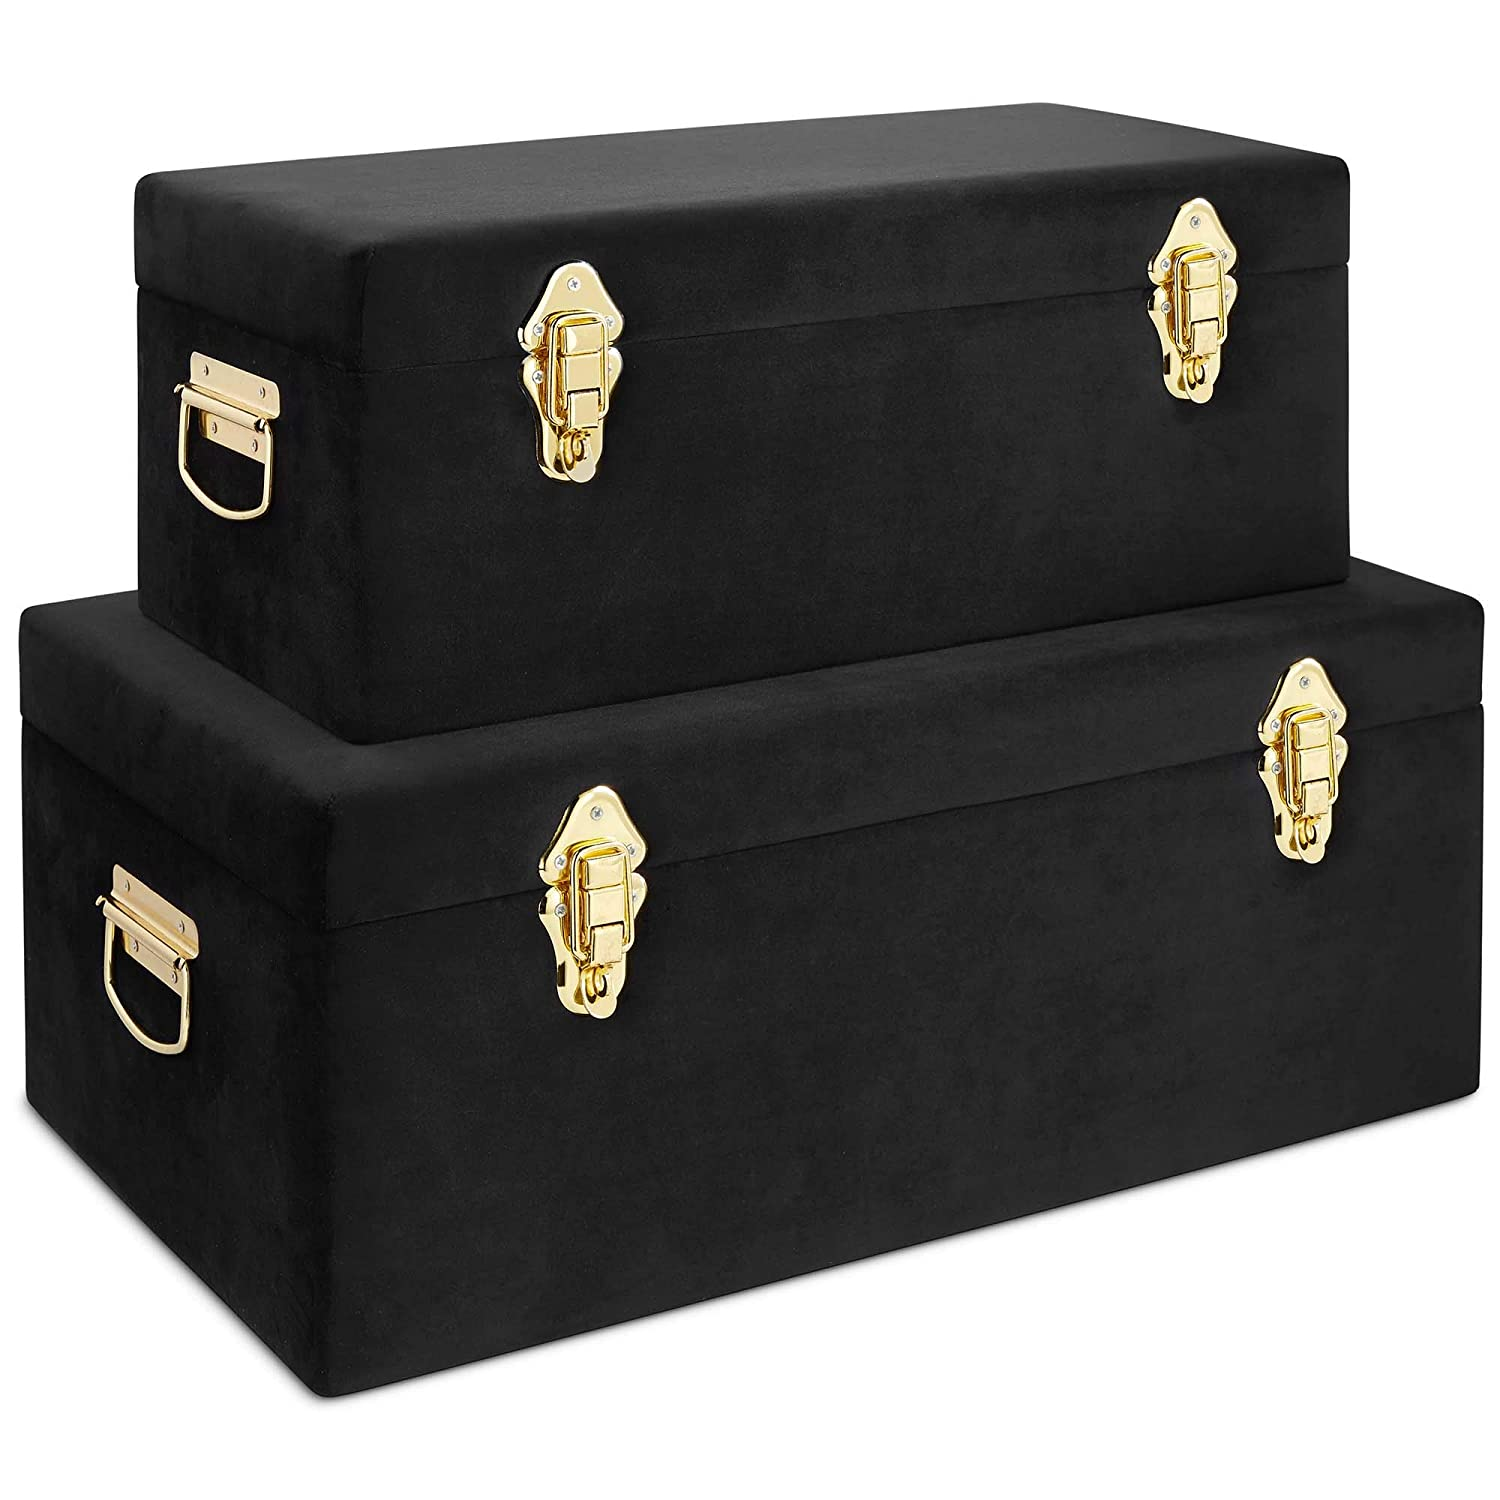 Beautify Set of 2 Grey Velvet Storage Trunks Chests for Bedroom, Living Room - Grey & Rose Gold